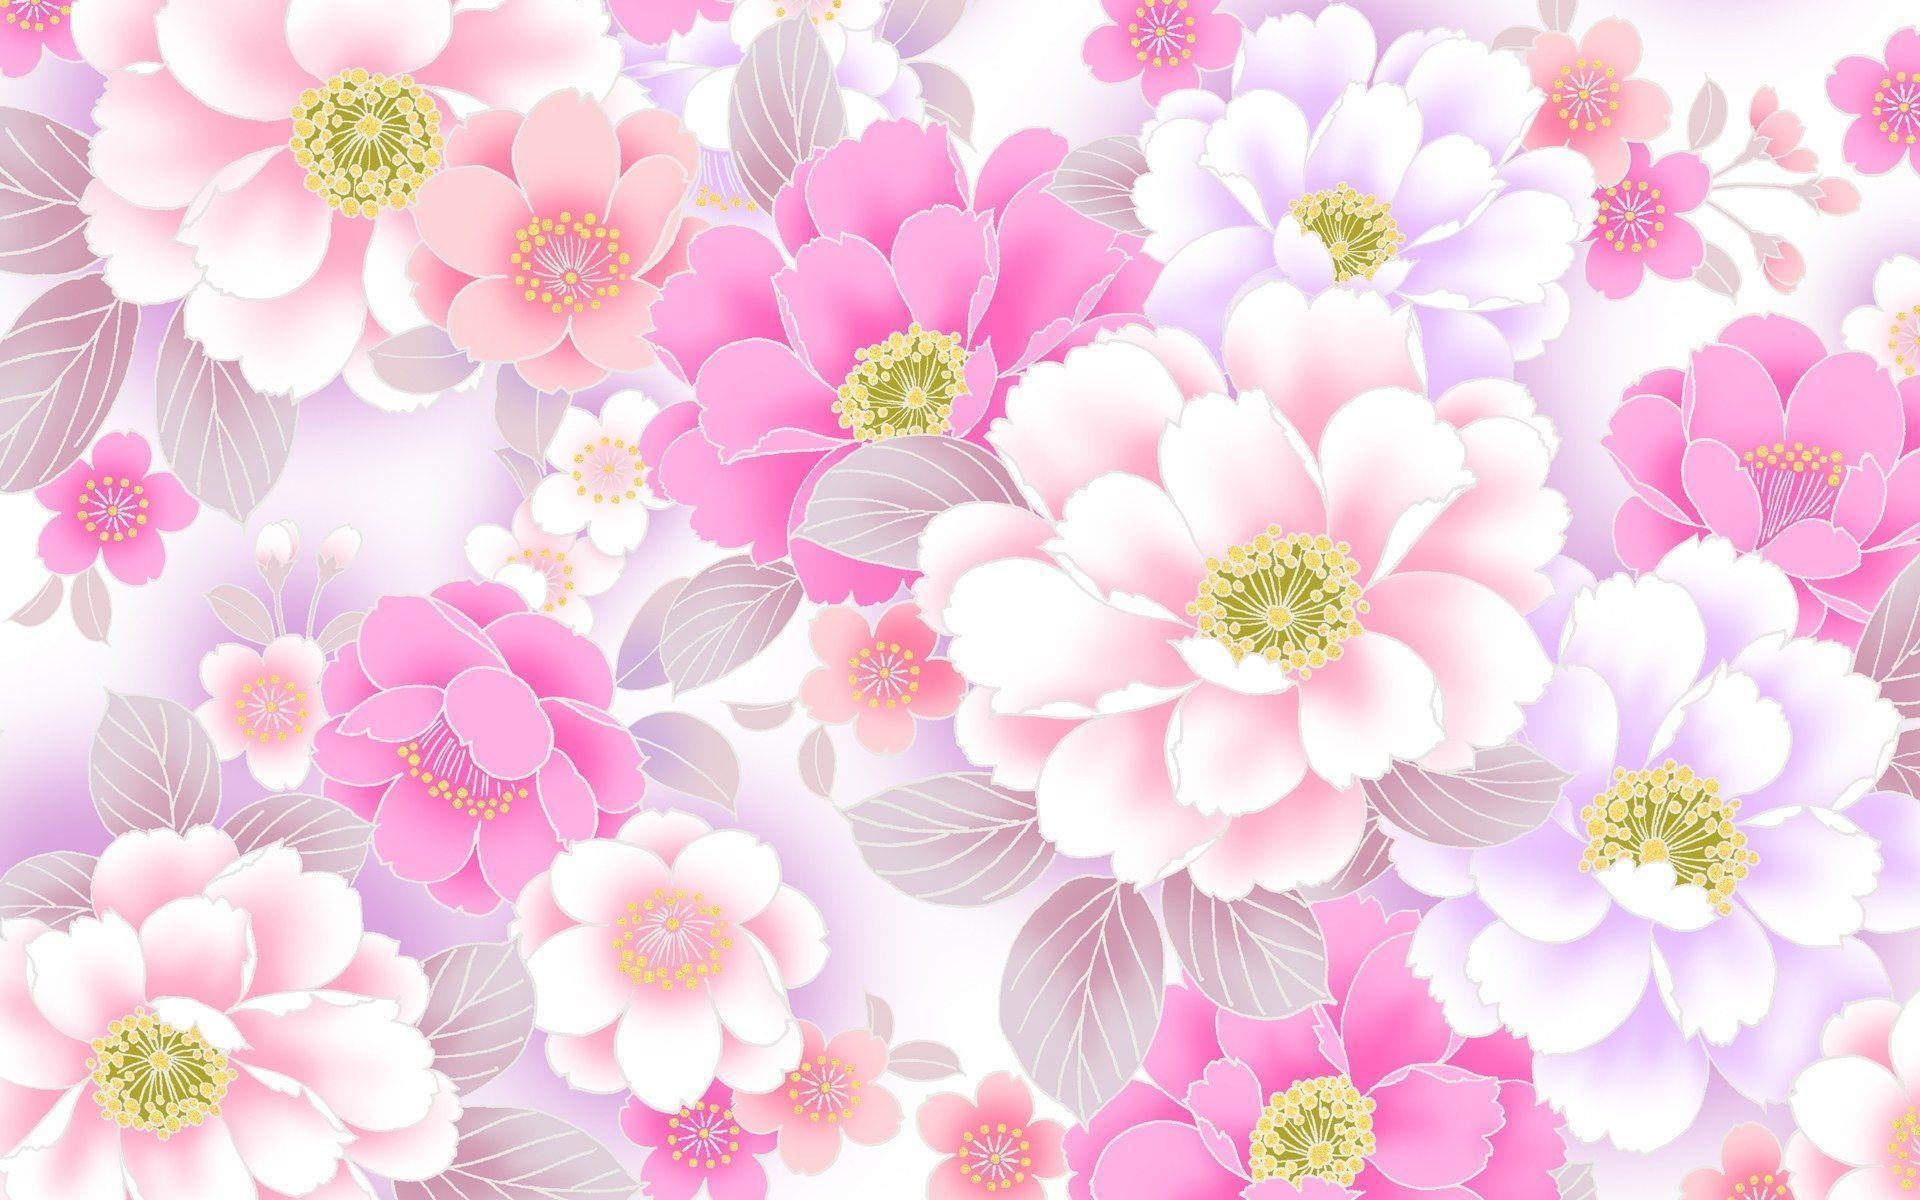 Floral Desktop Backgrounds 1920x1200